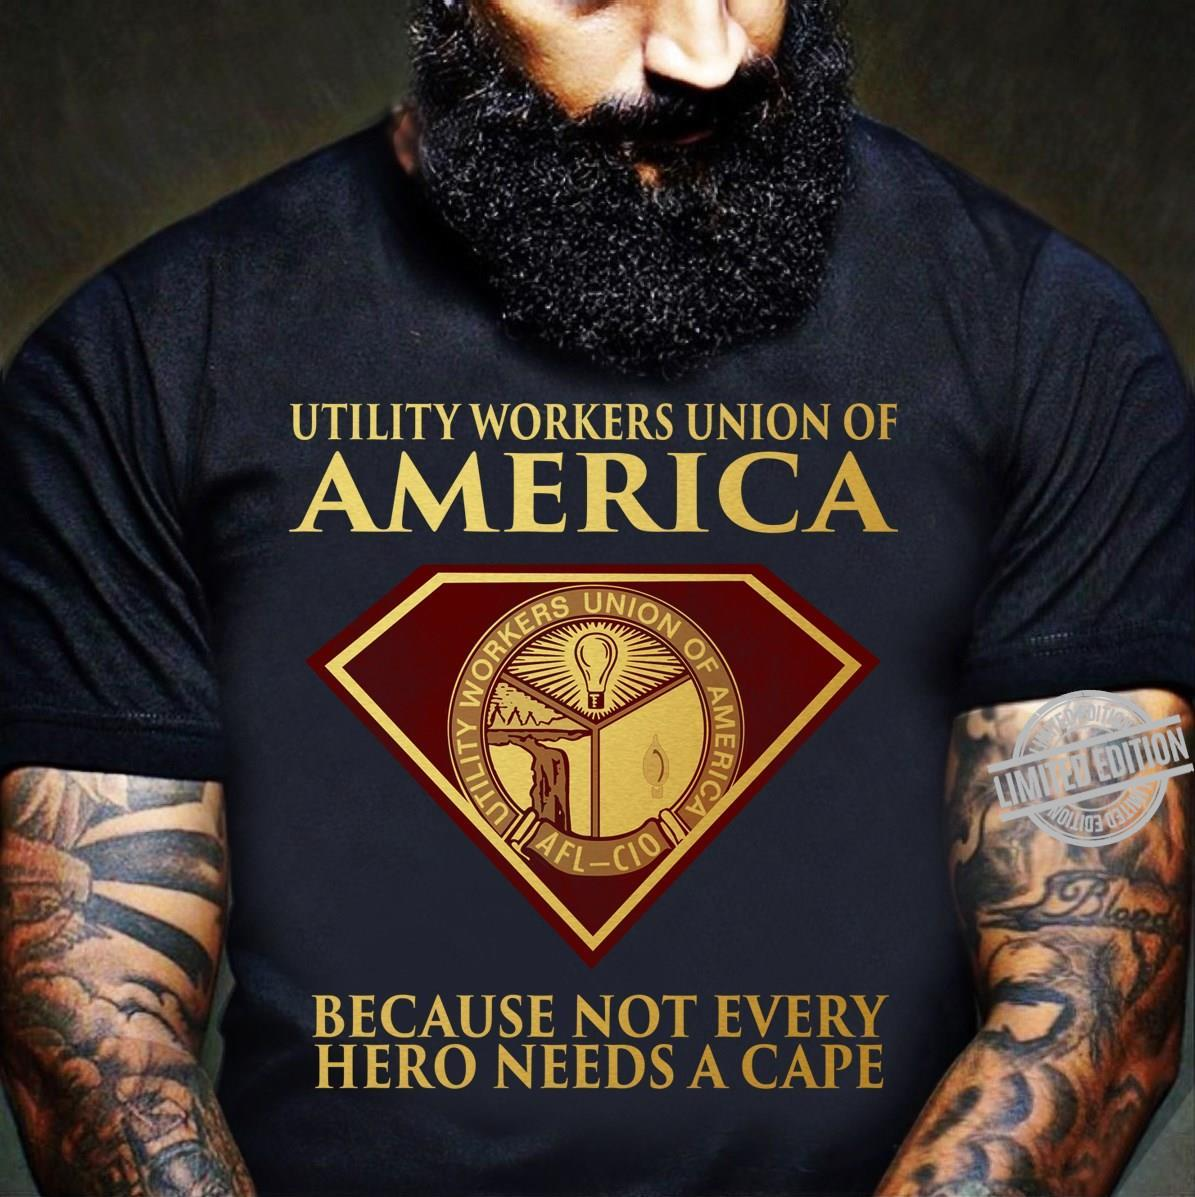 Utility Workers Union Of America Because Not Every Hero Needs A Cape Shirt